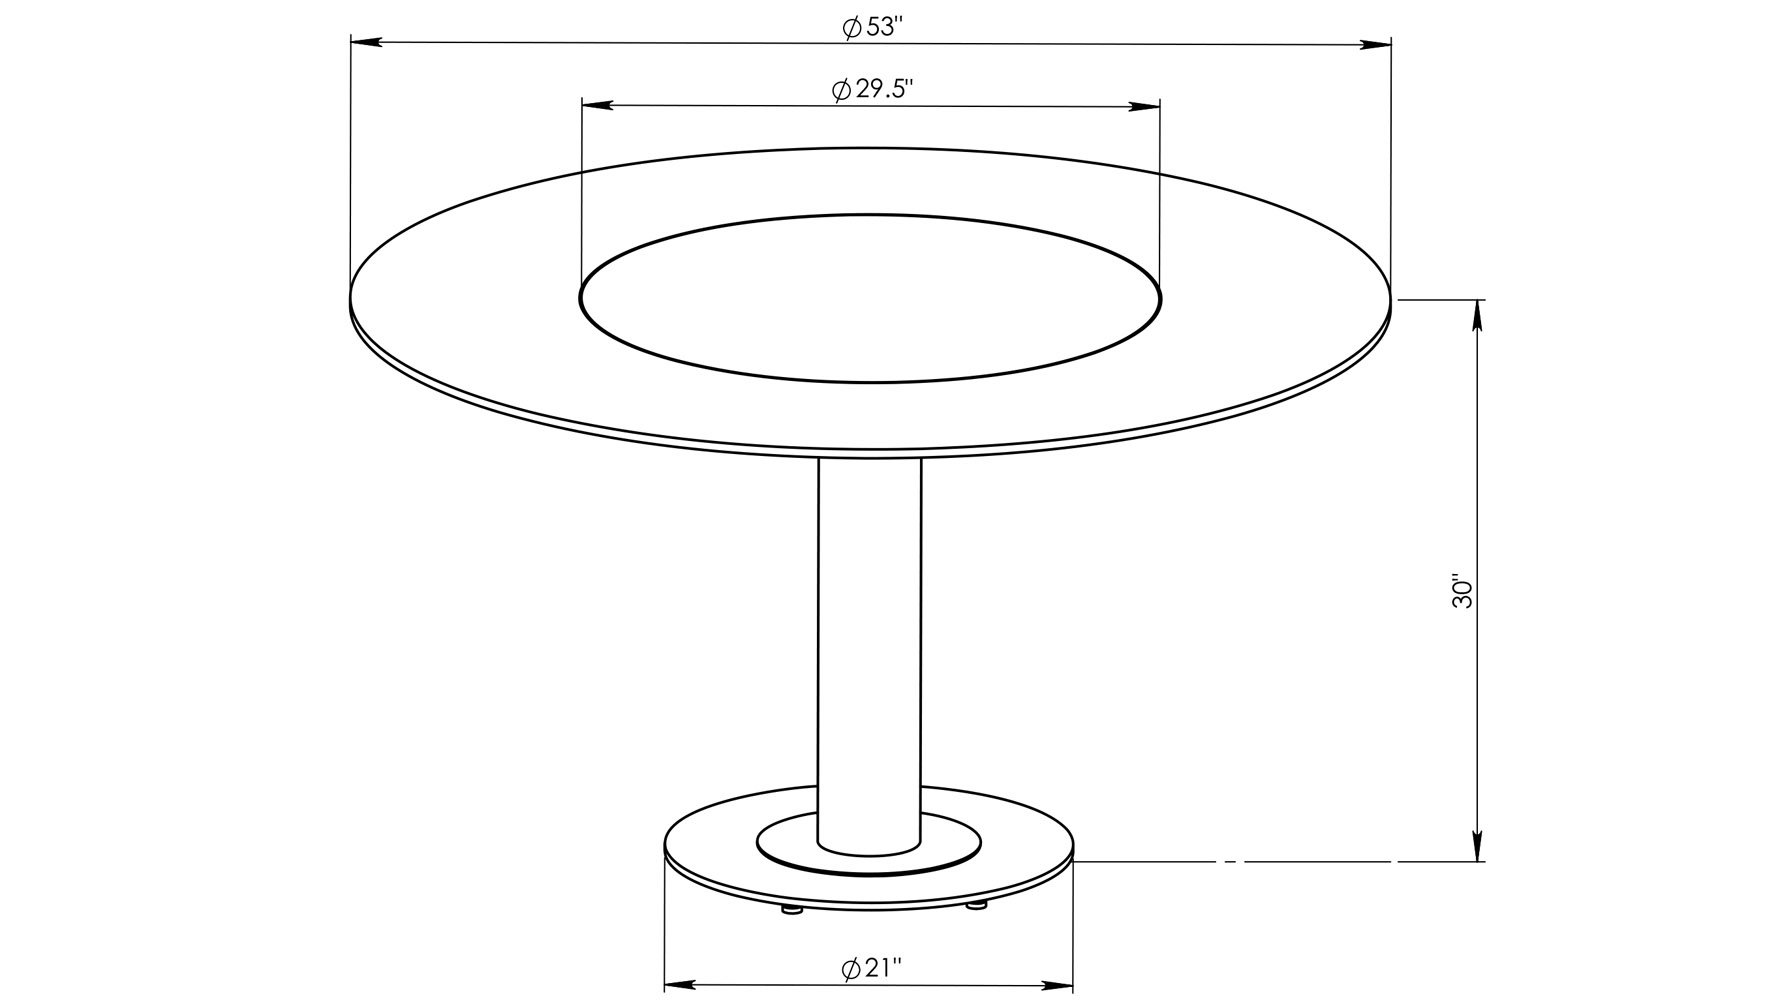 Fabulous Fiore Modern Round Glass Dining Table With Chrome Base Zuri Furniture